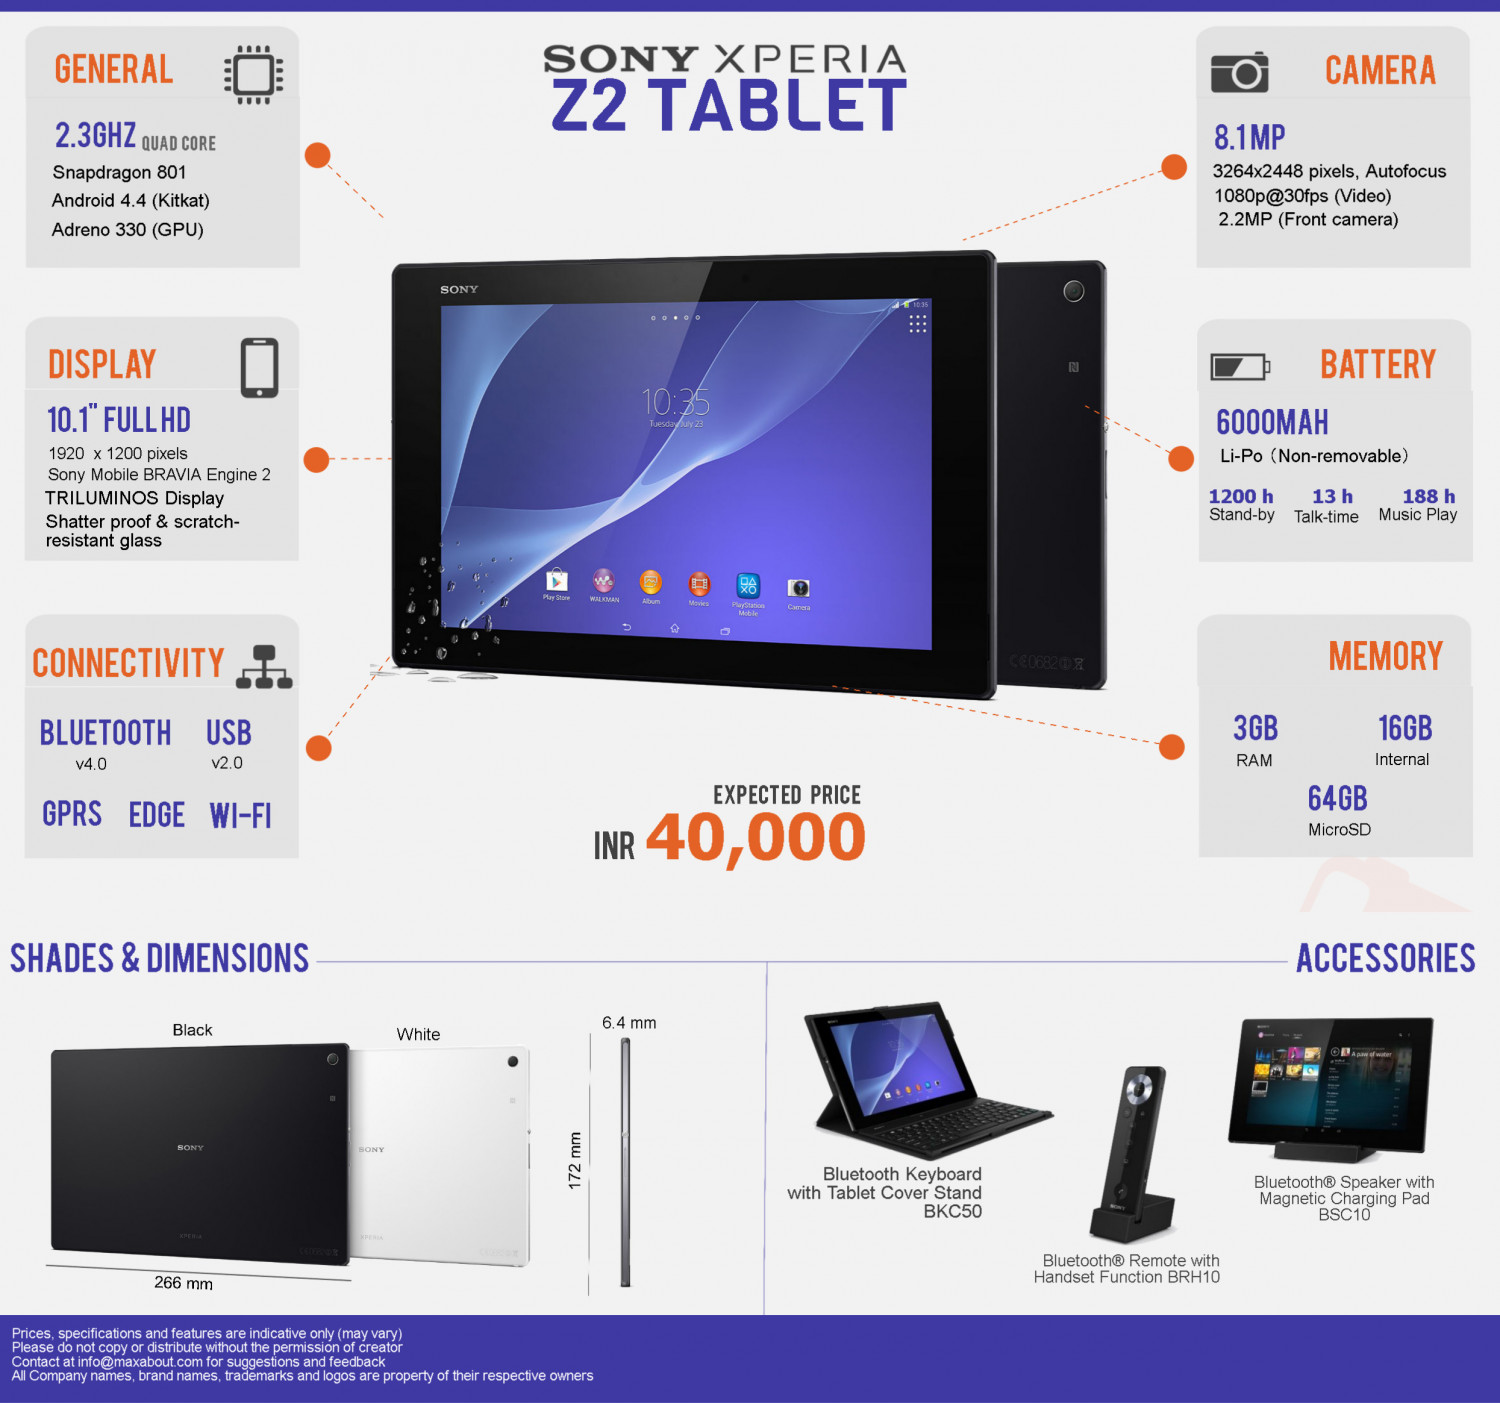 Sony Xperia Z2 Tablet: Fast Facts Infographic